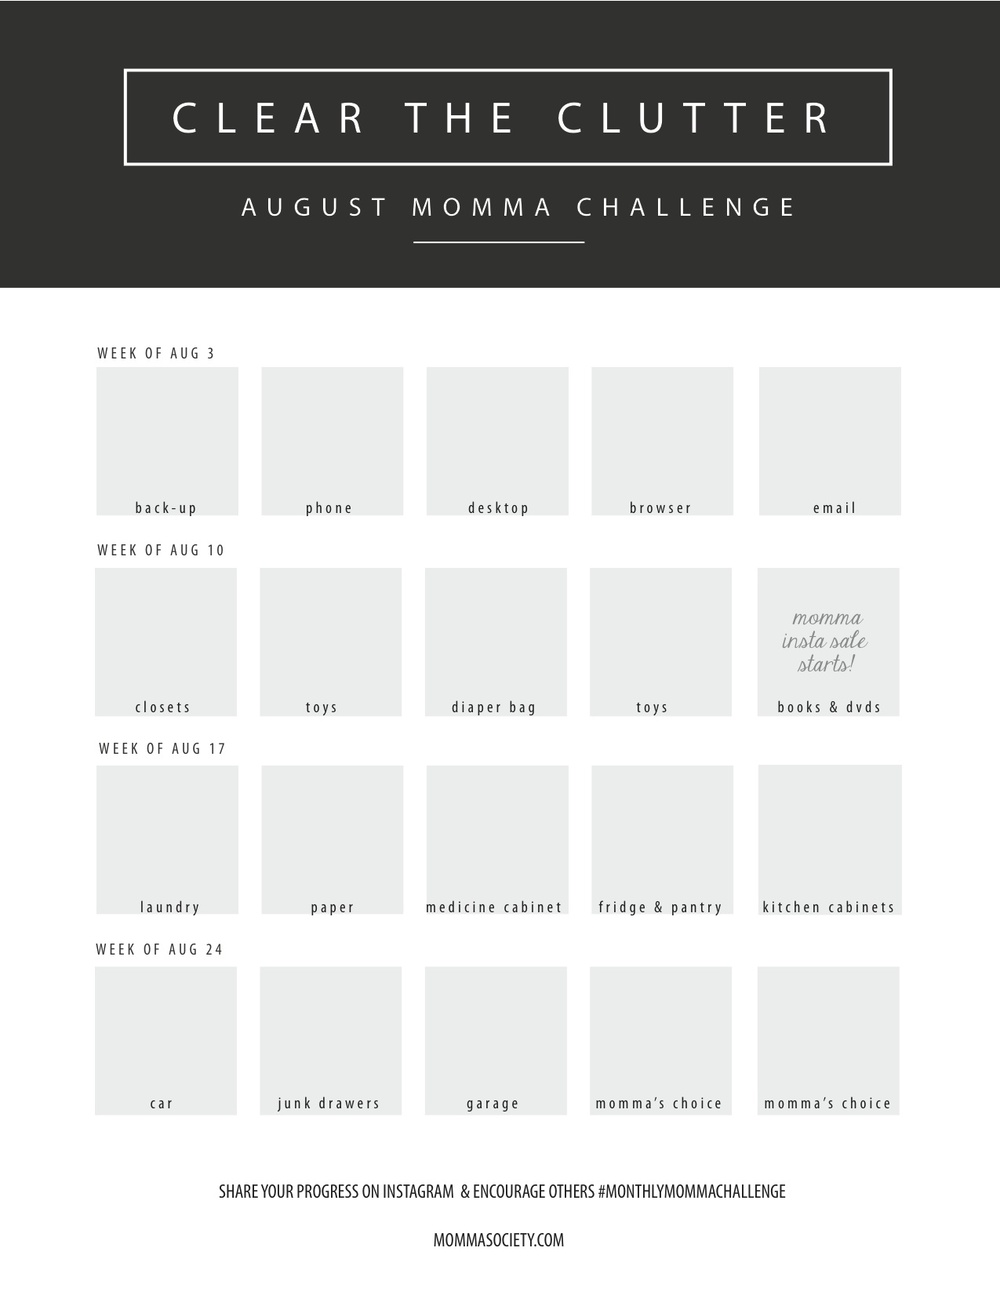 30 Day Guide to Clearing the Clutter | Momma Society-The Community of Modern Moms | www.mommasociety.com | Join our party on Instagram @MommaSociety